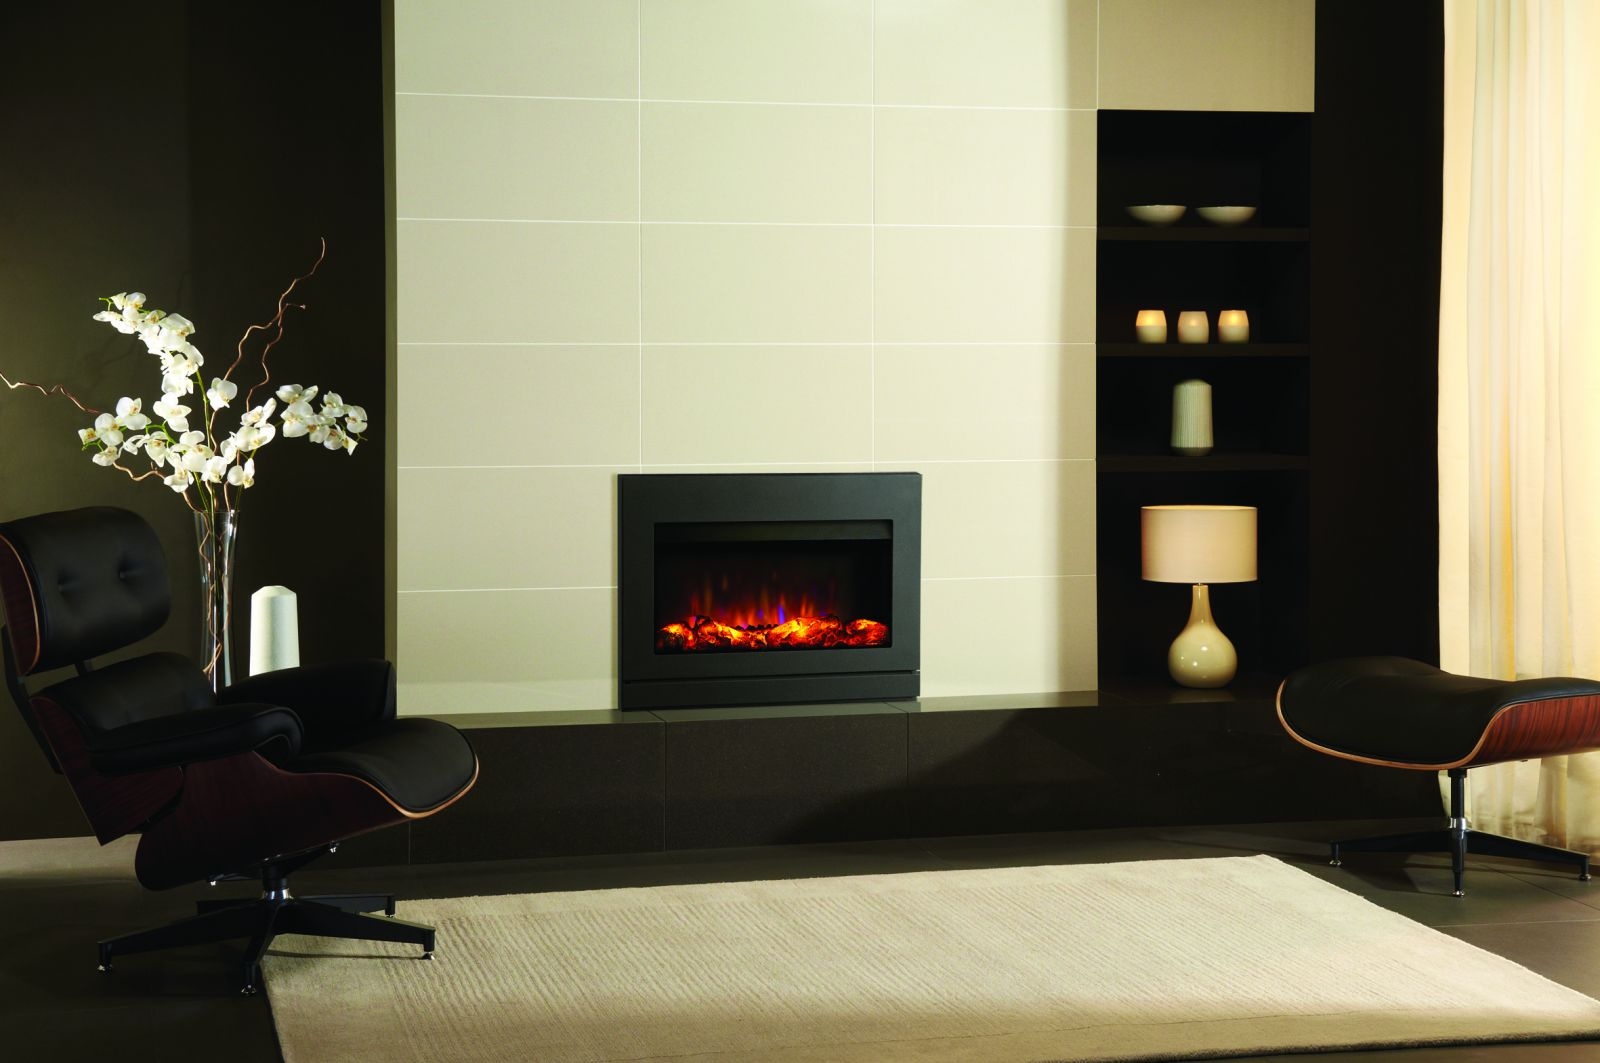 Riva2 670 Designio2 Steel (hearth-mounted)